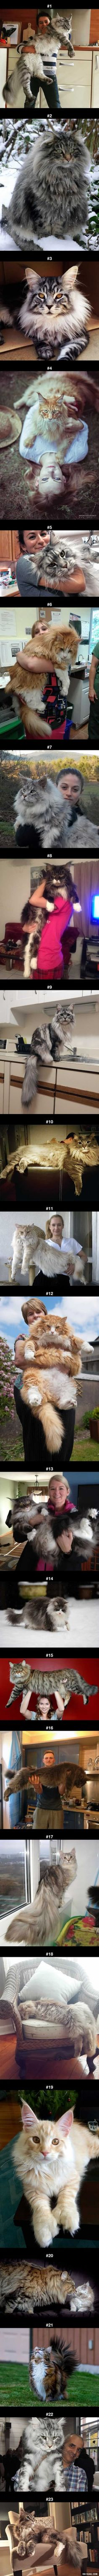 23 Maine Coon Cats That Will Make Your Cat Look Tiny More